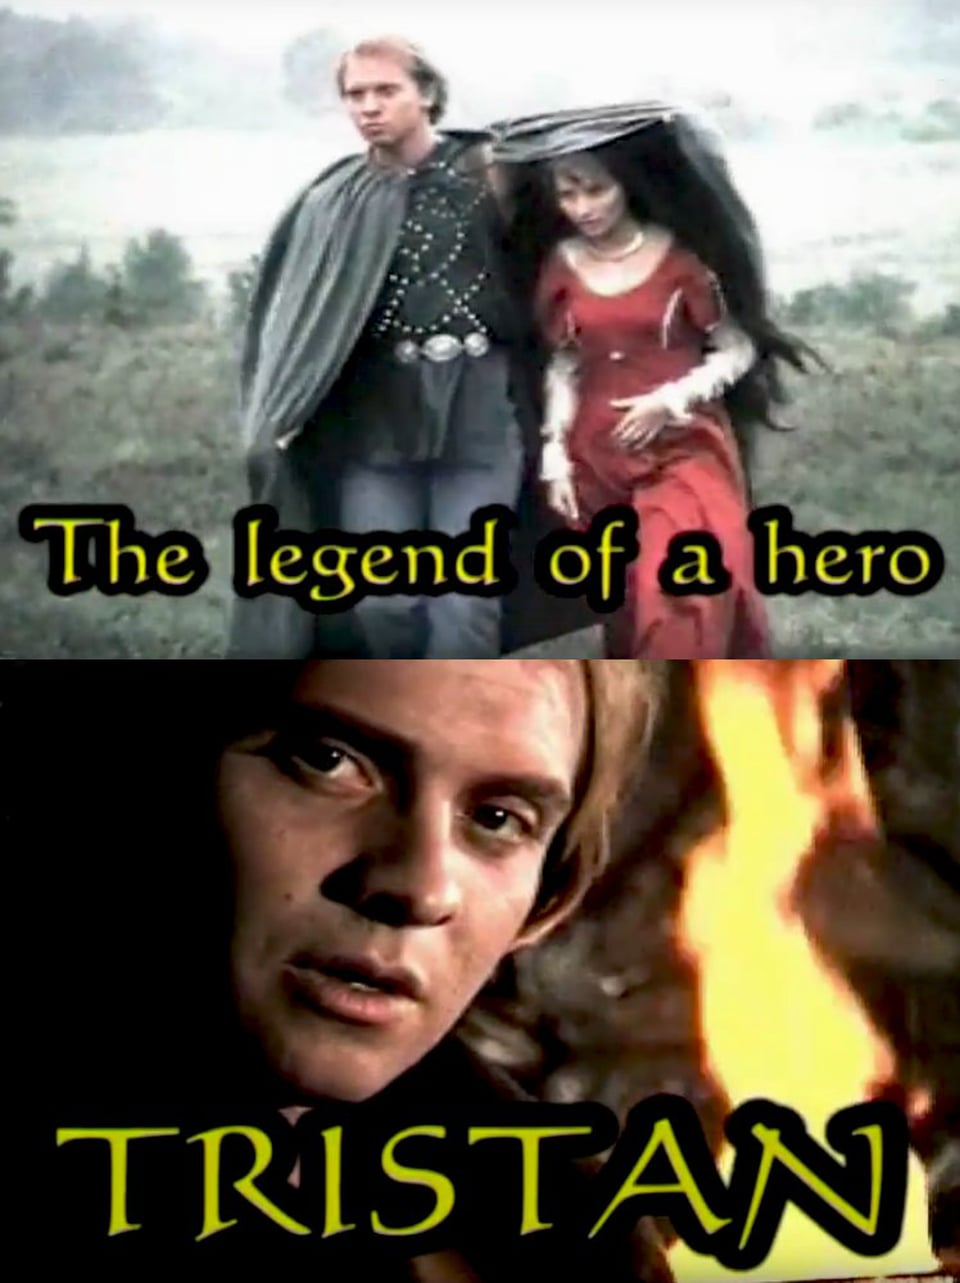 Watch Legend of a Hero on our Free Roku Channel